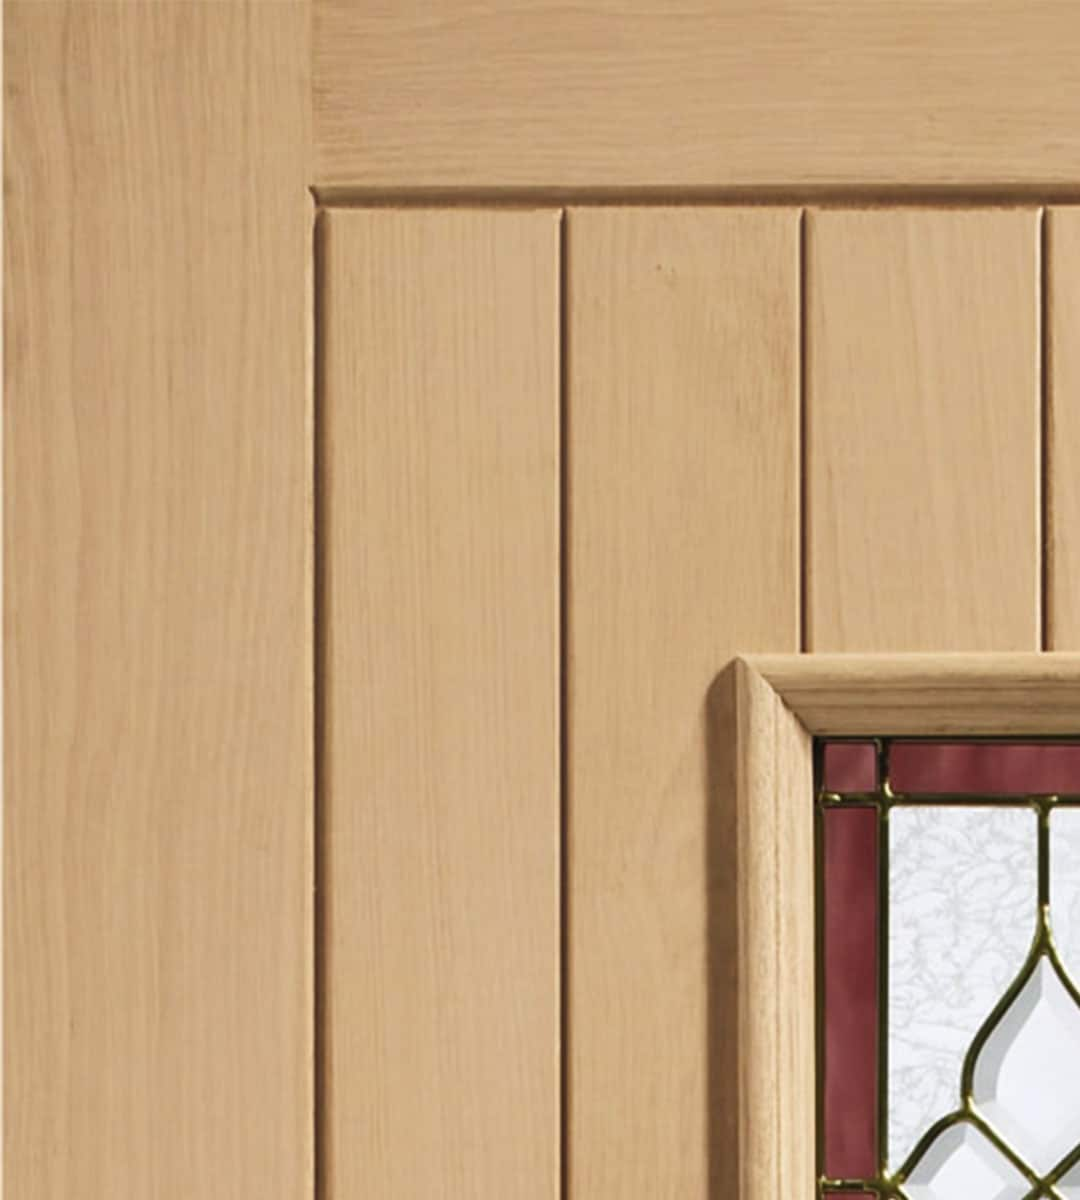 chancery onyx external glass door glazed exterior front door closeup